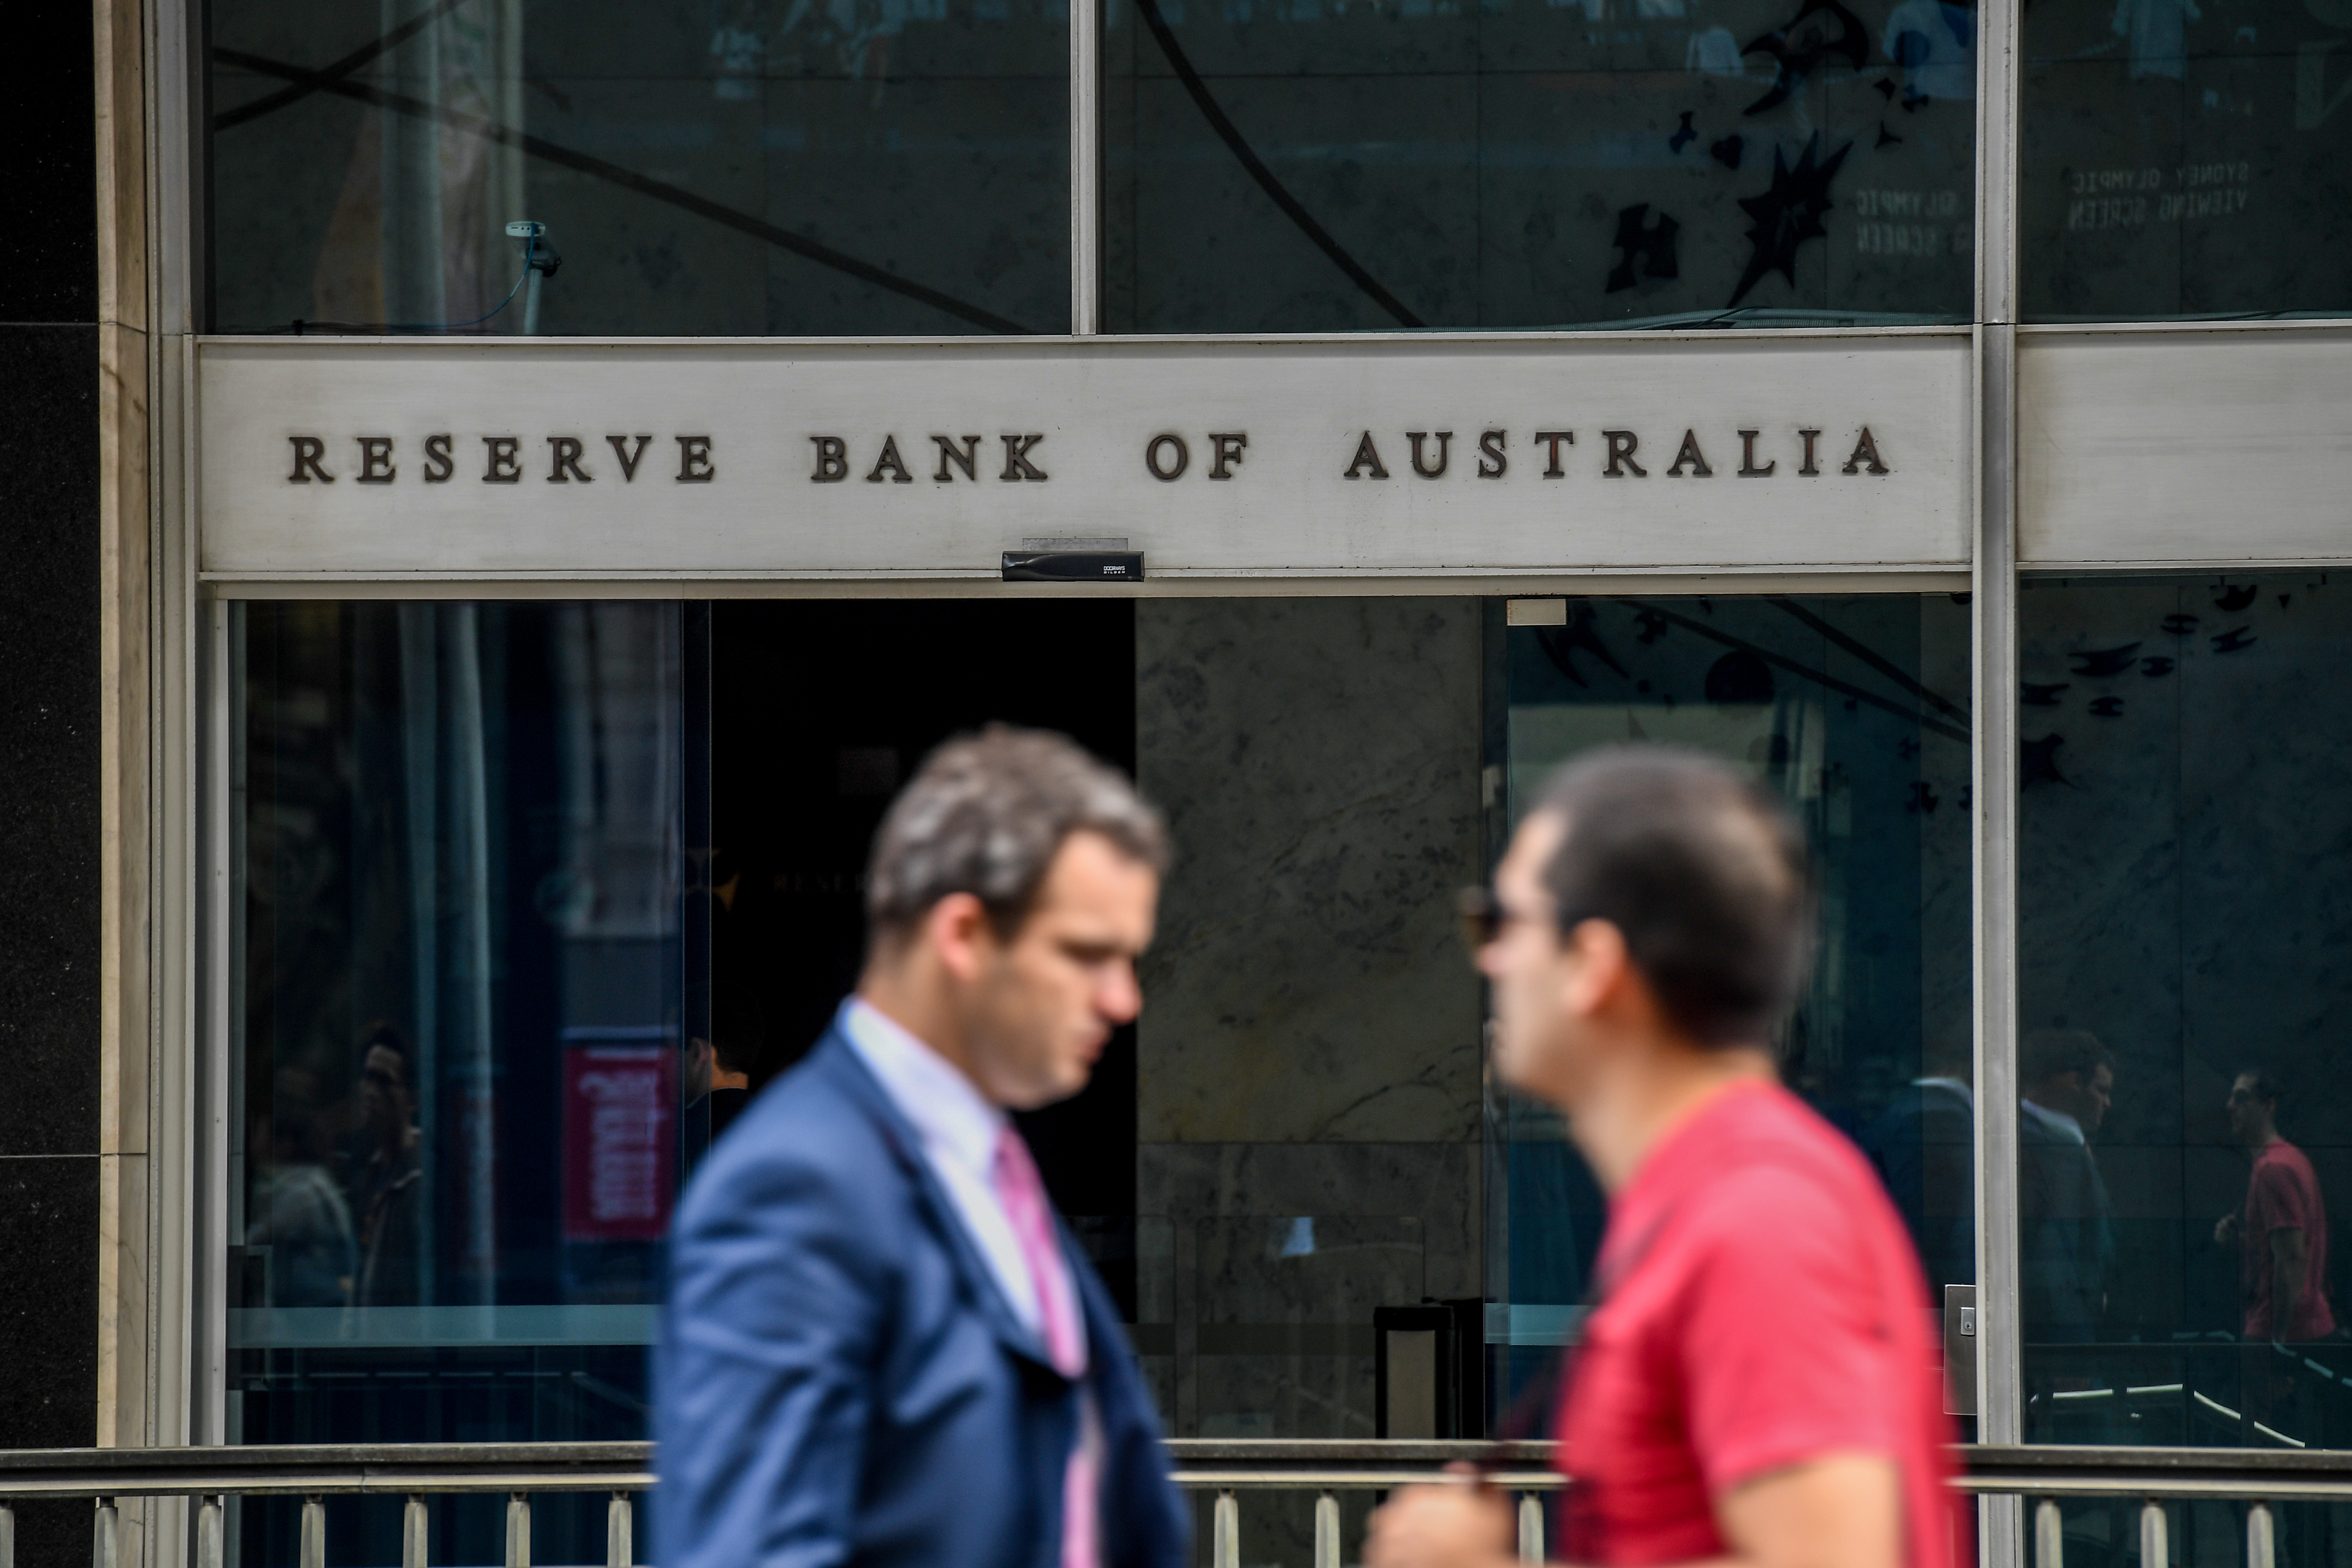 The Reserve Bank of Australia has announced its November interest rate decision.